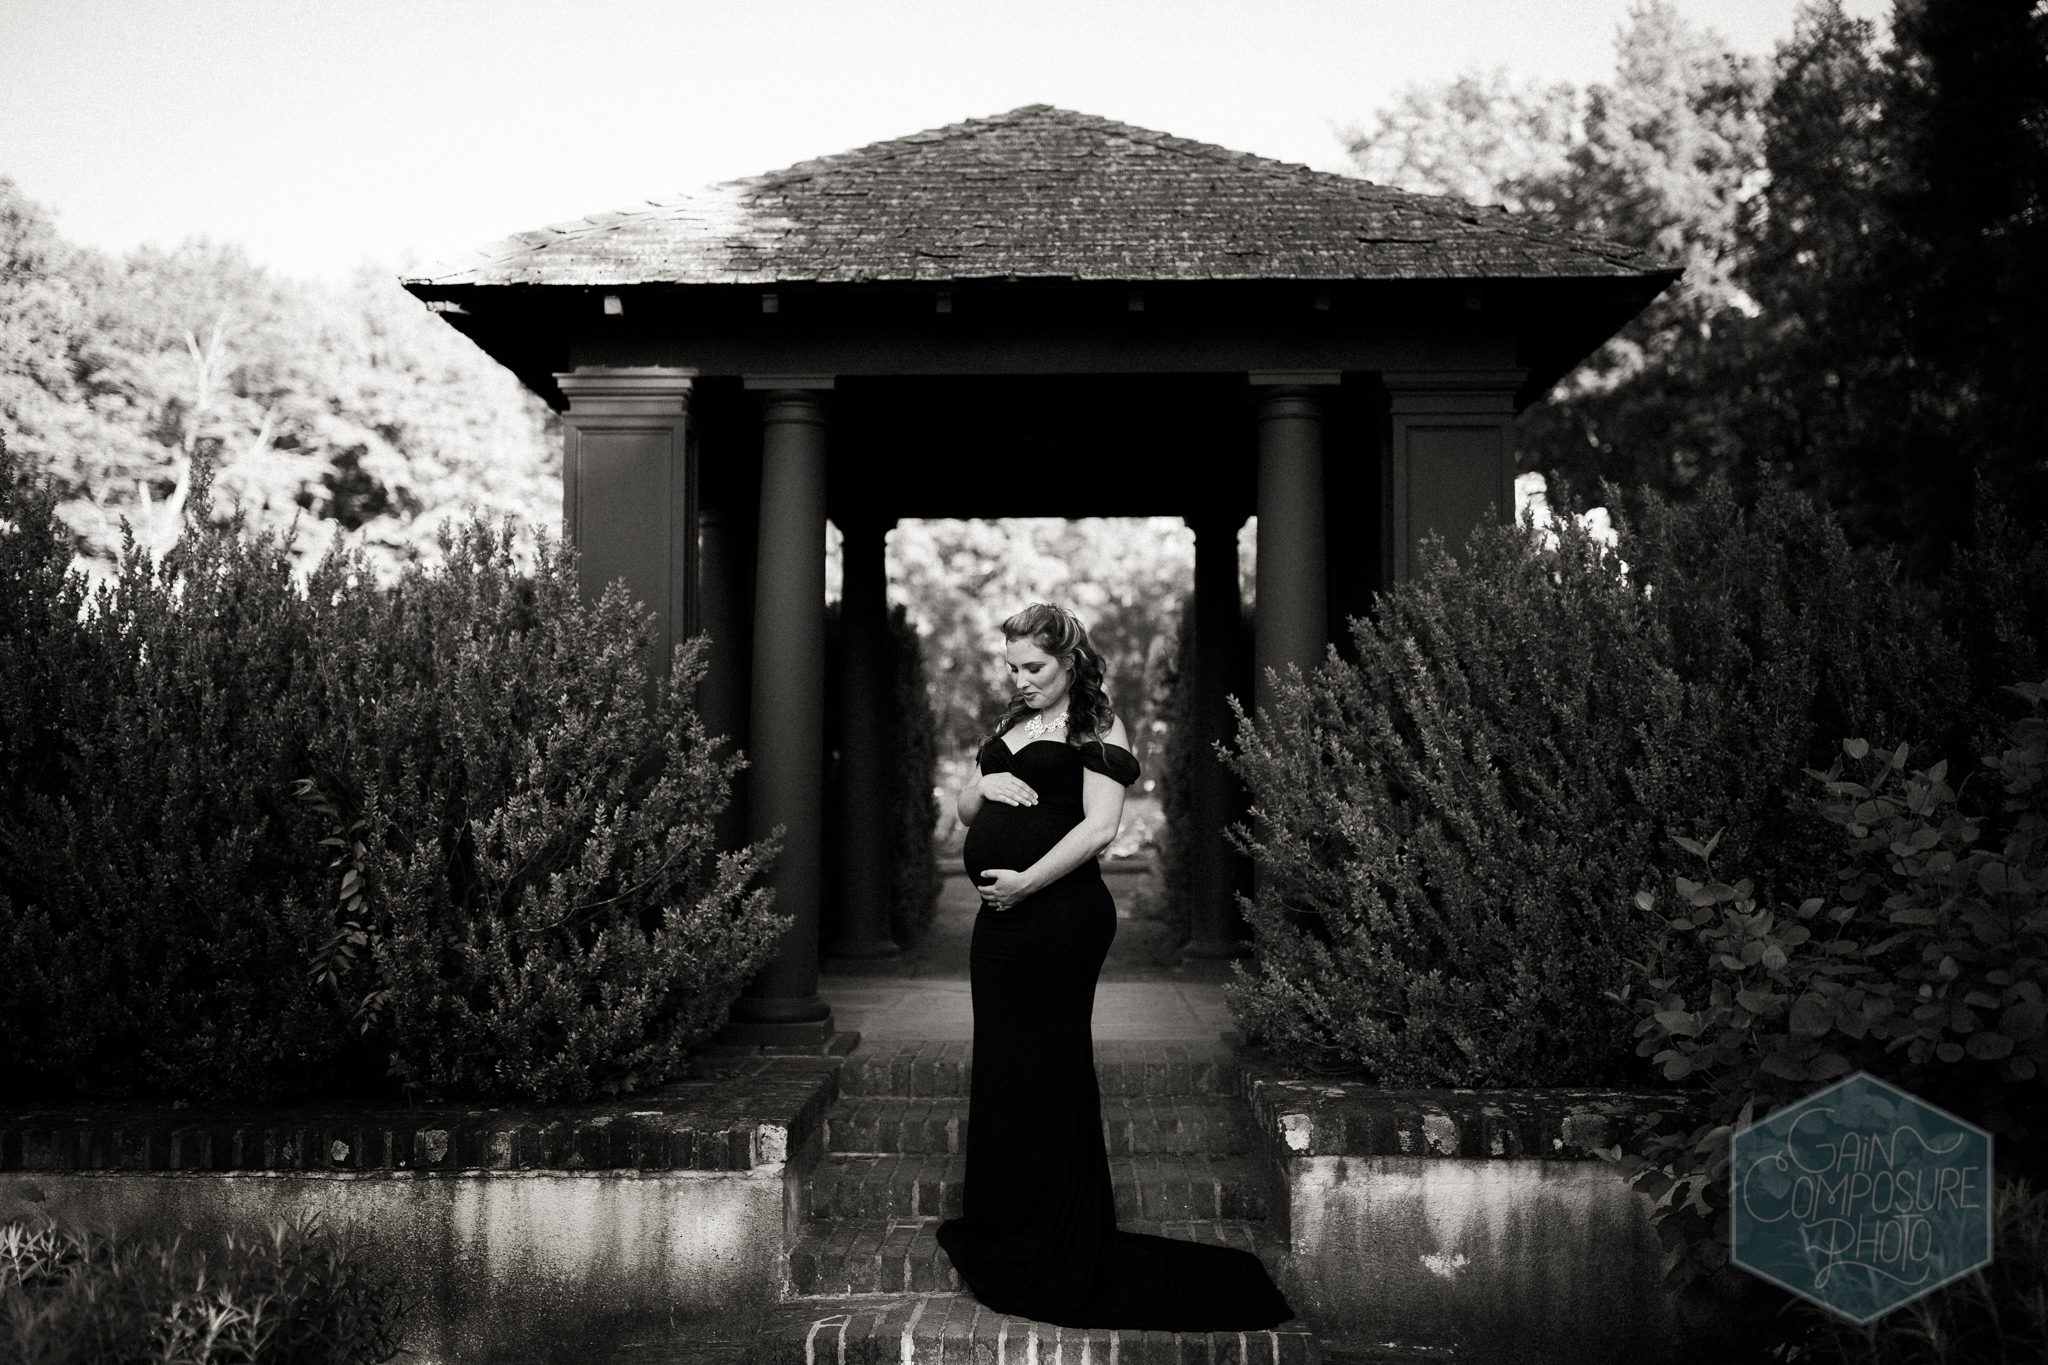 Classy and timeless maternity session in Winston Salem. © Gain Composure Photography, winston salem photographer